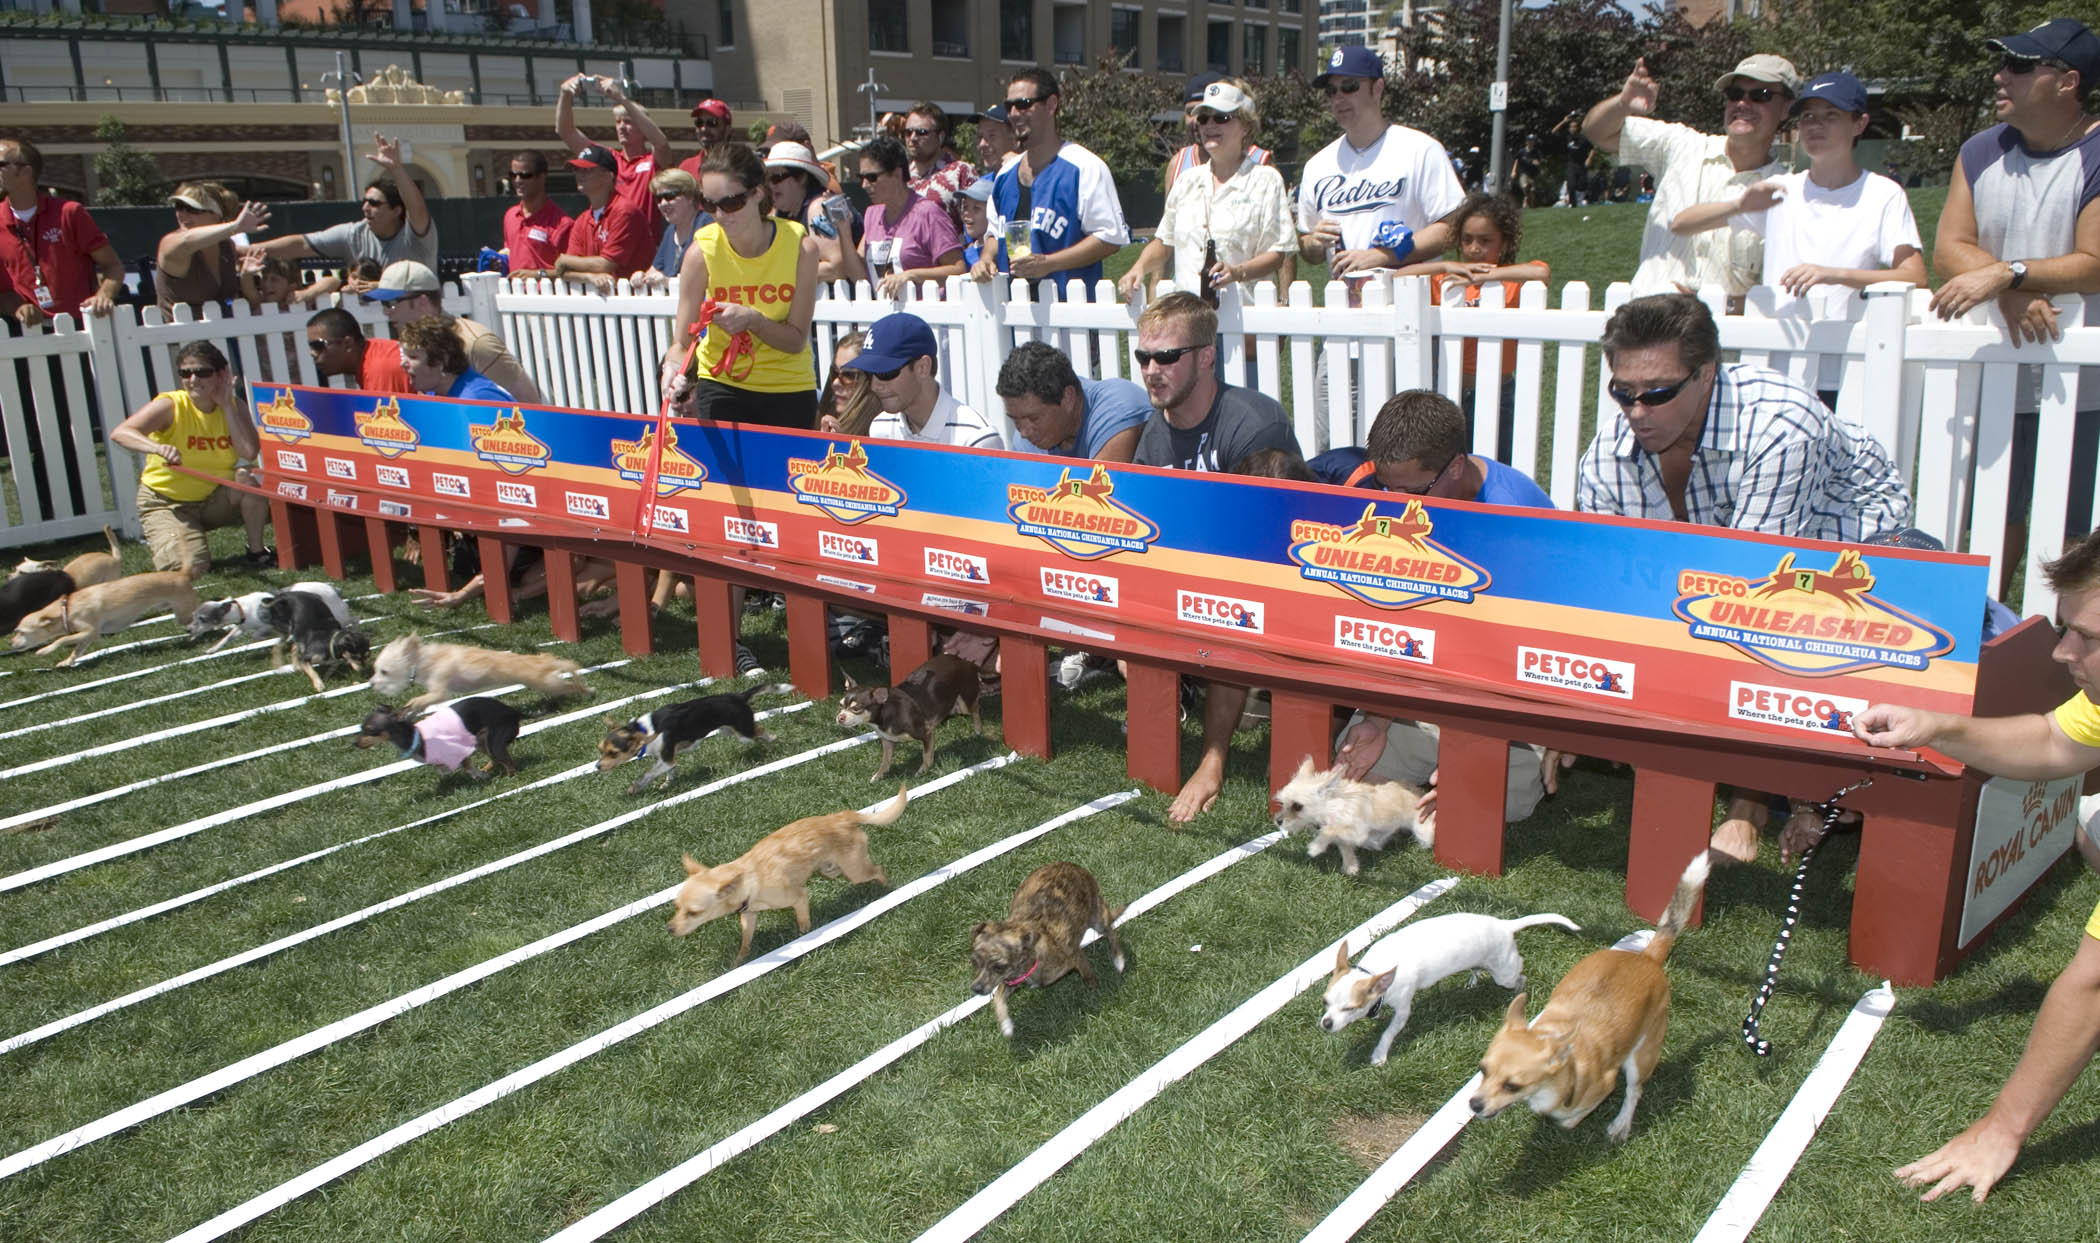 Petco - At San Diego S Petco Park The Third Annual Petco Unleashed Chihuahua Race Brought Together 15 Of The Nation S Fastest Chihuahuas